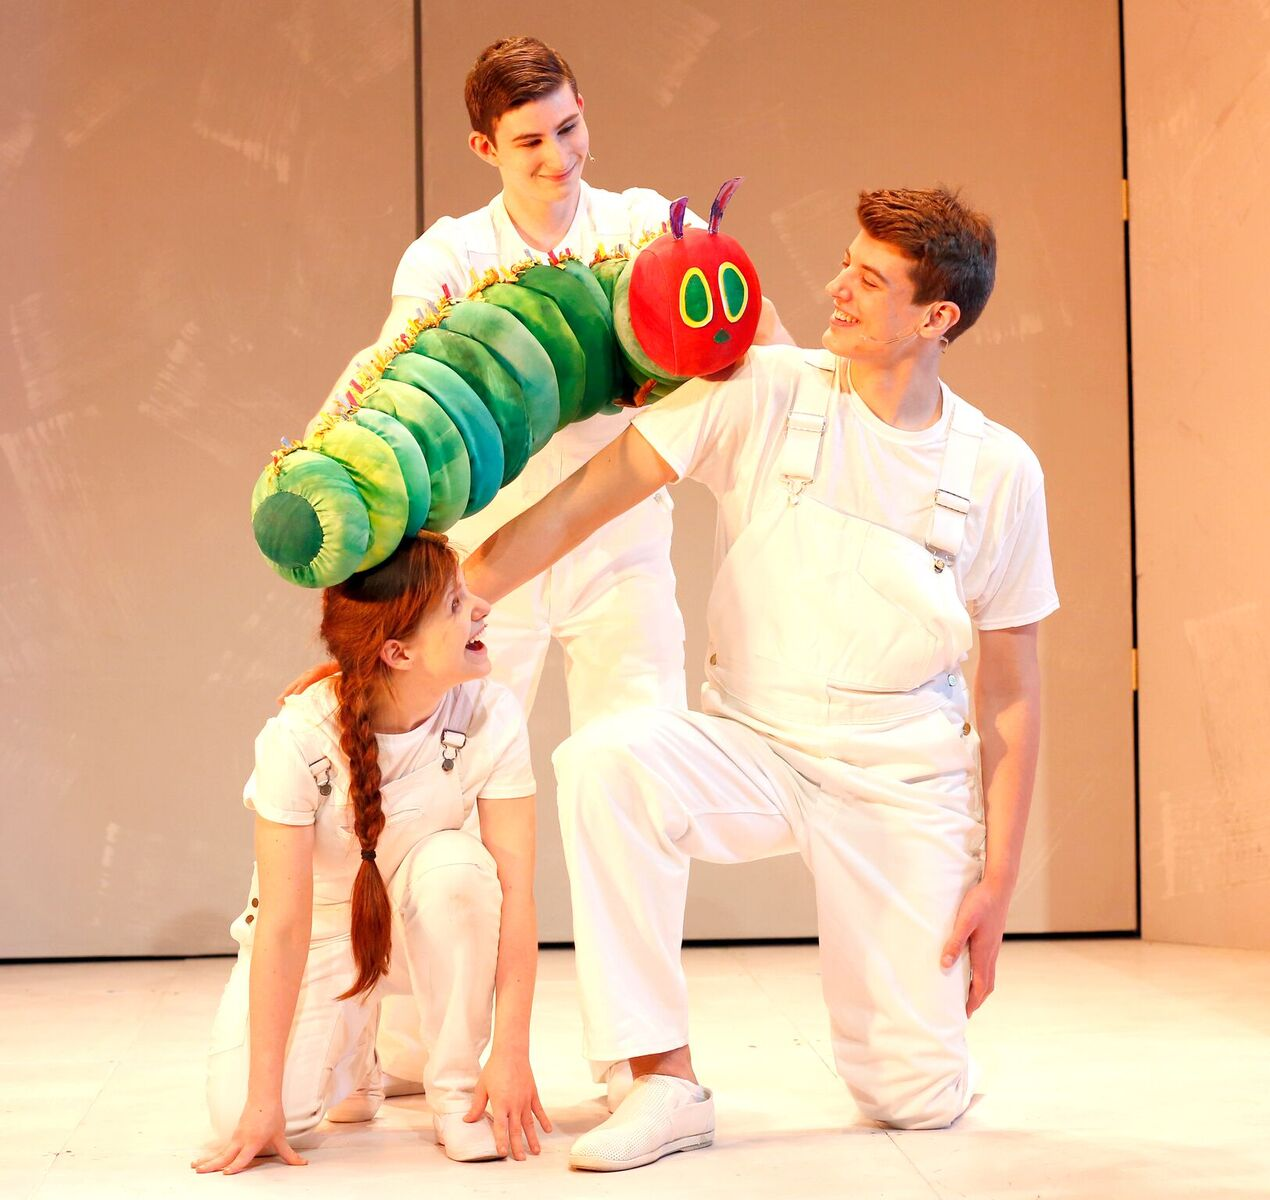 The Very Hungry Caterpillar Show is Back!